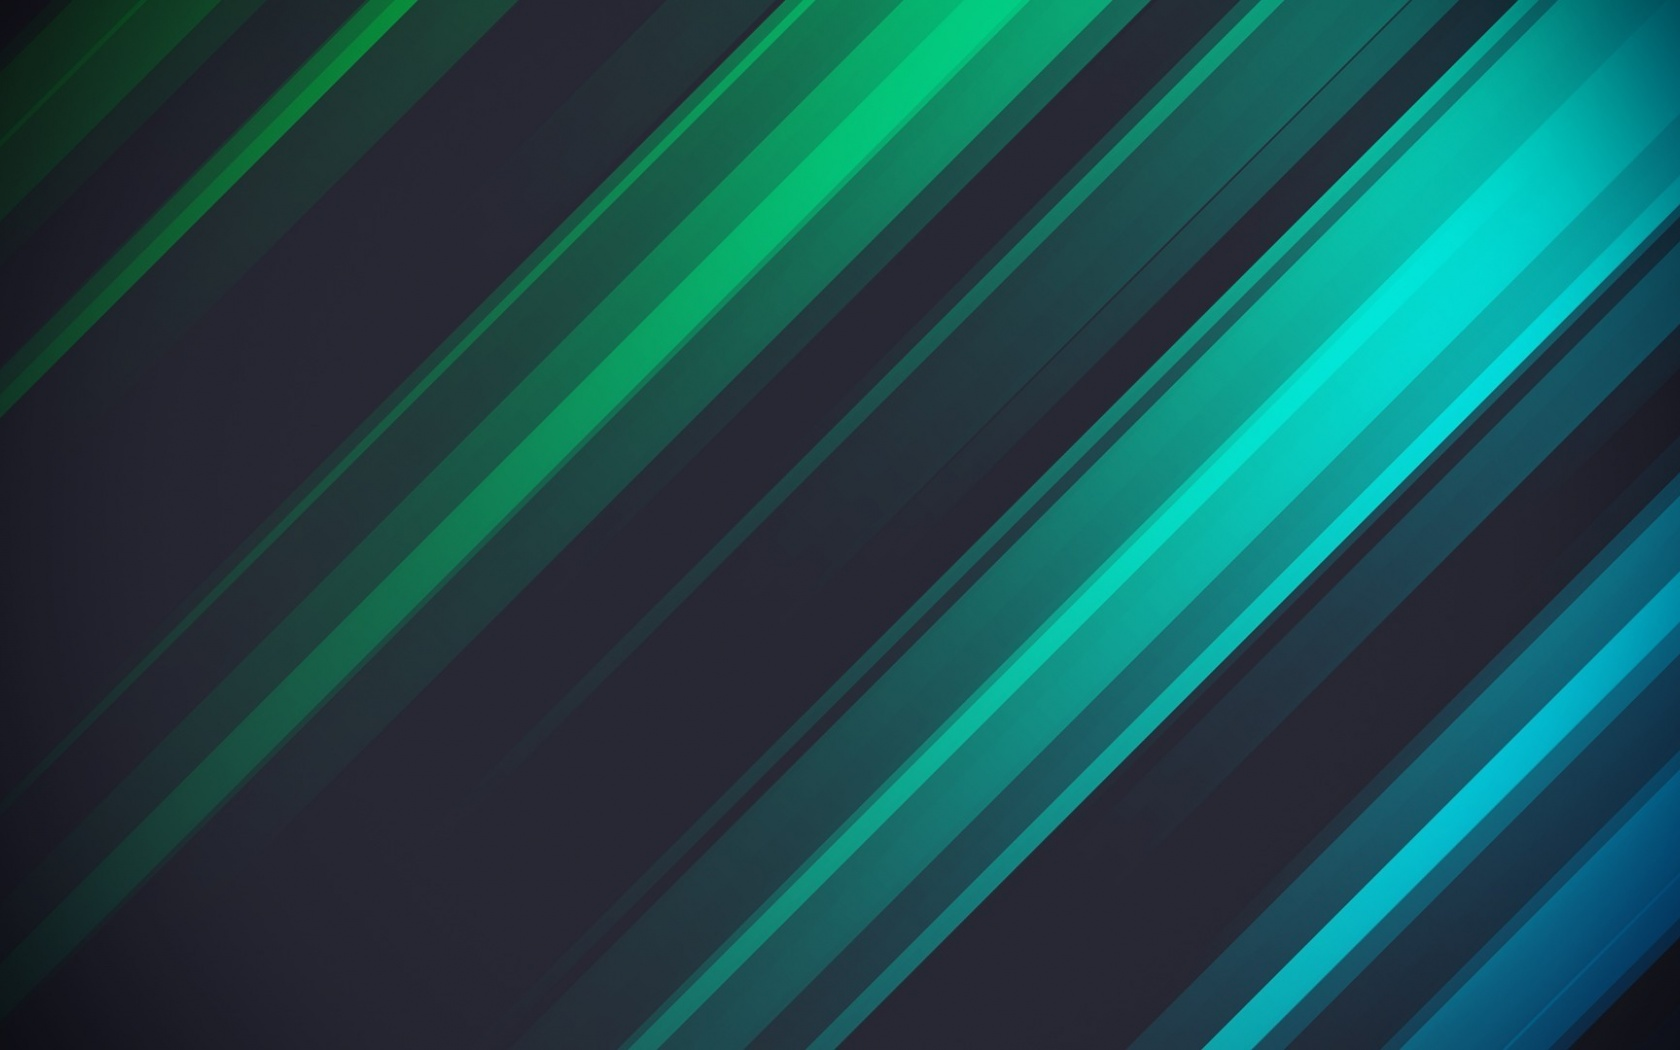 blue and green graphic wallpaper - photo #14